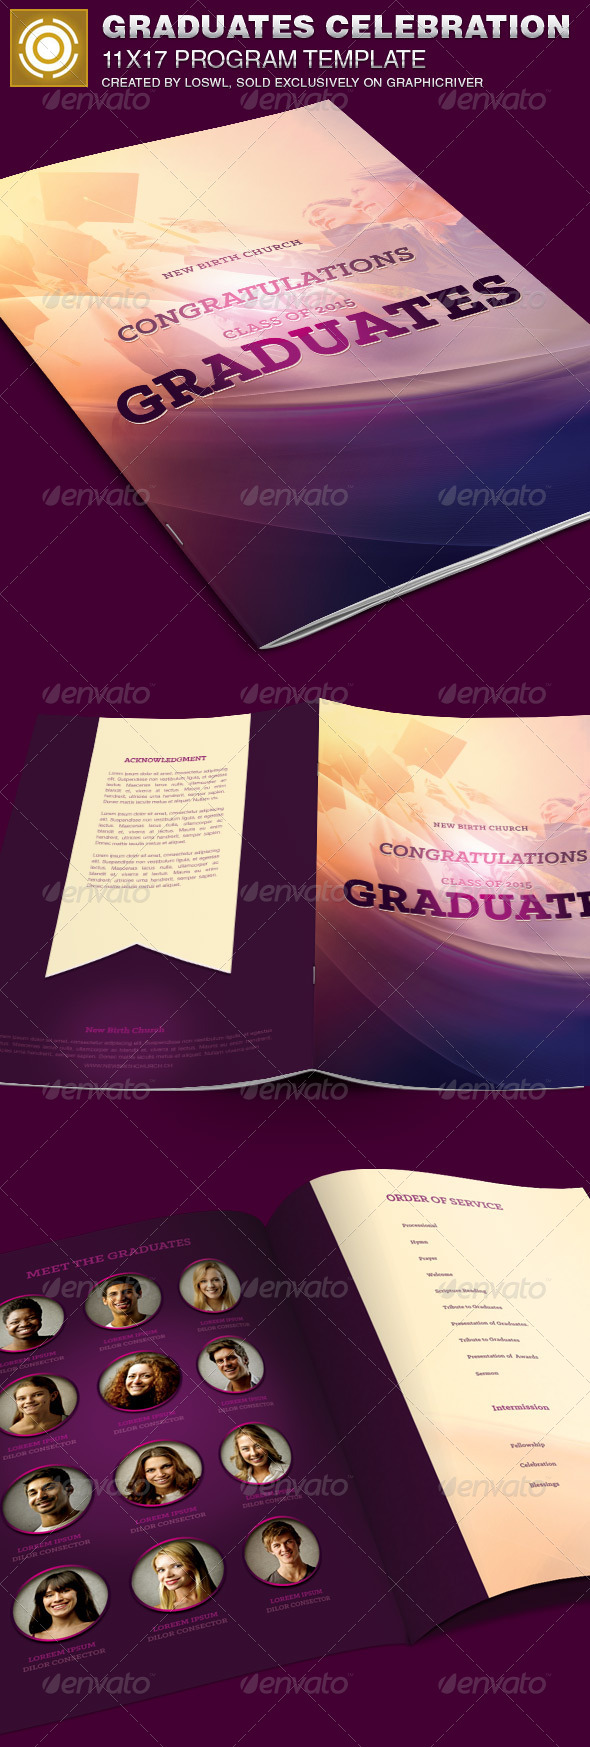 GraphicRiver Graduates Celebration Church Program Template 7749928